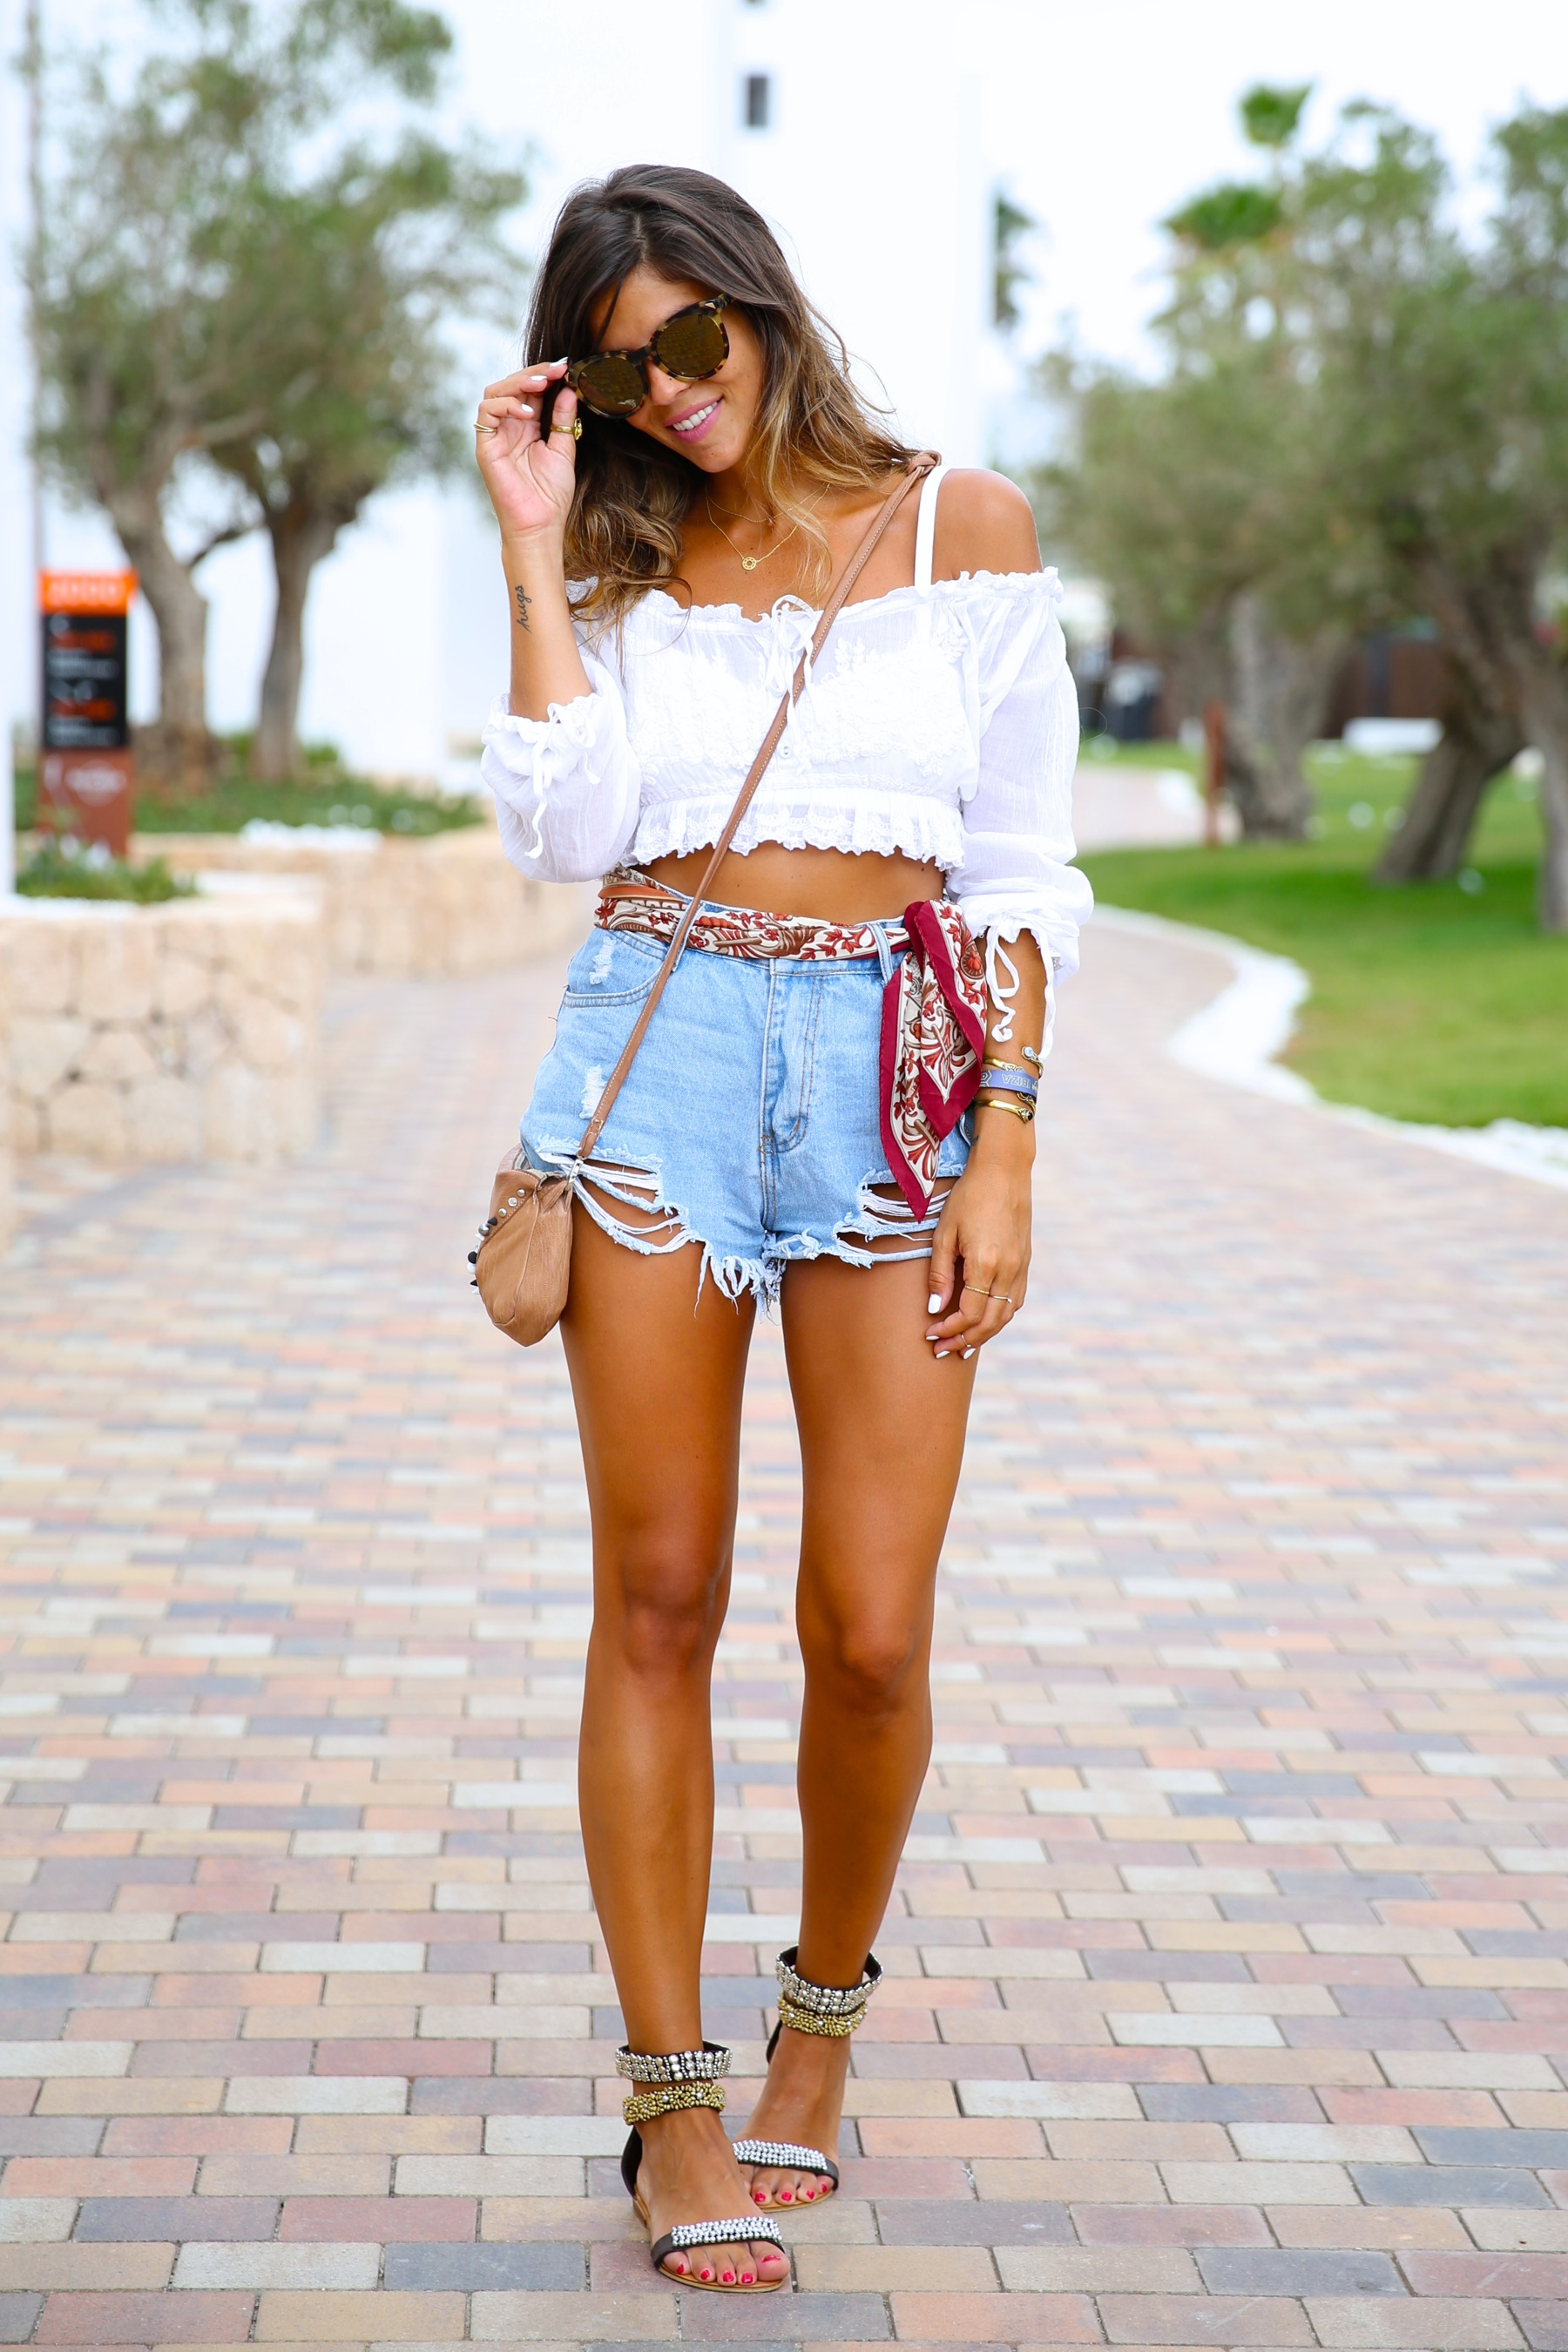 trendy_taste-look-outfit-street_style-ootd-blog-blogger-fashion_spain-moda_españa-hard_rock_hotel-ibiza-palladium-shorts_vaqueros-denim_shorts-boho-verano-summer-hippie-pañuelo-20